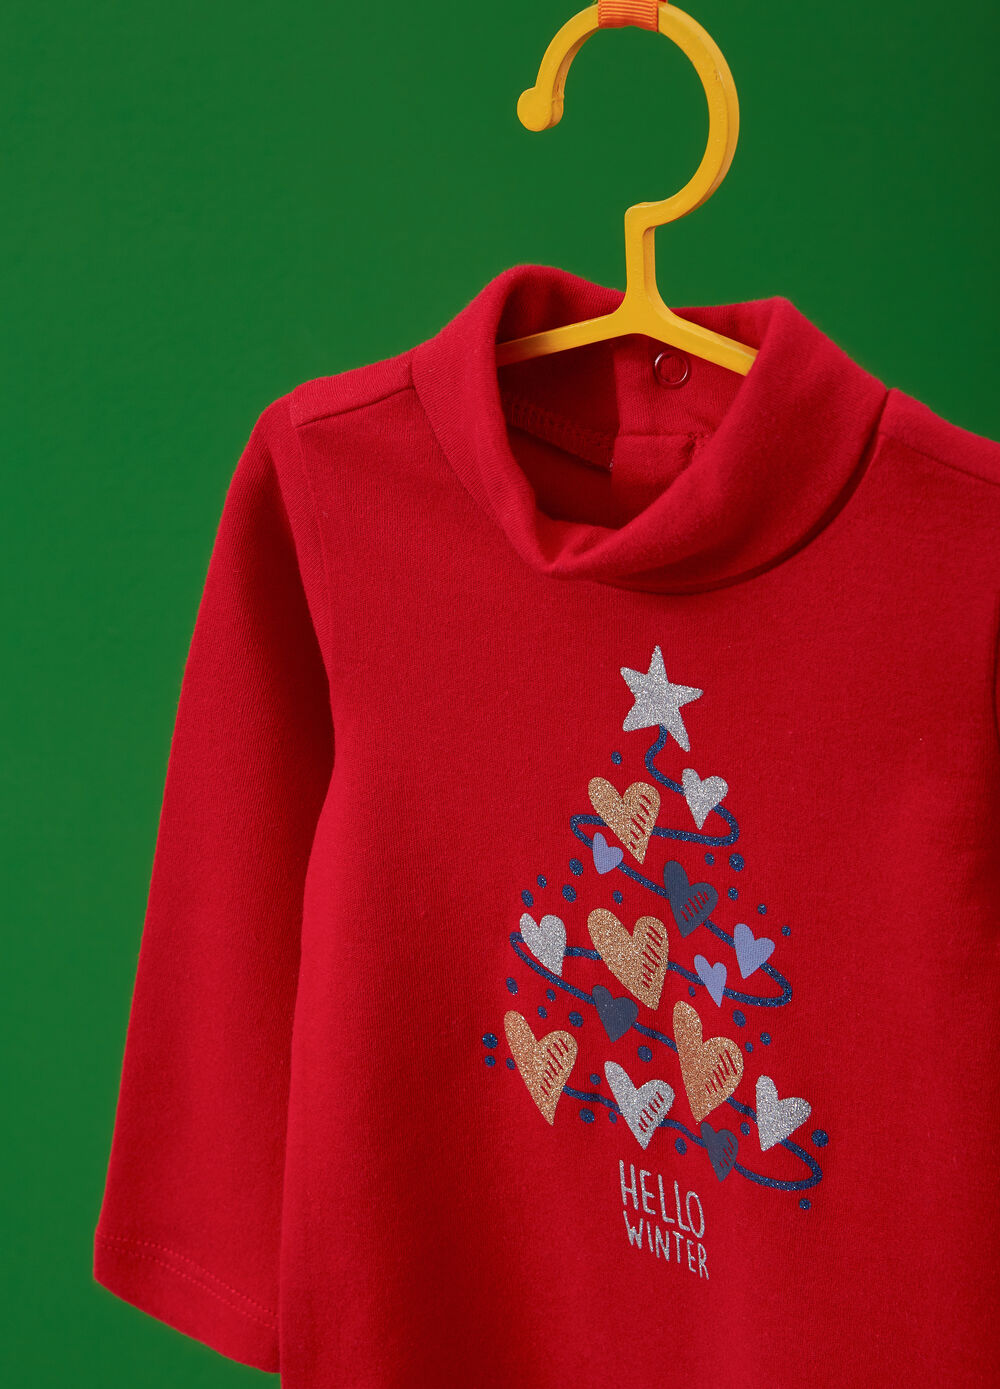 Turtleneck jumper in 100% cotton with glitter heart print